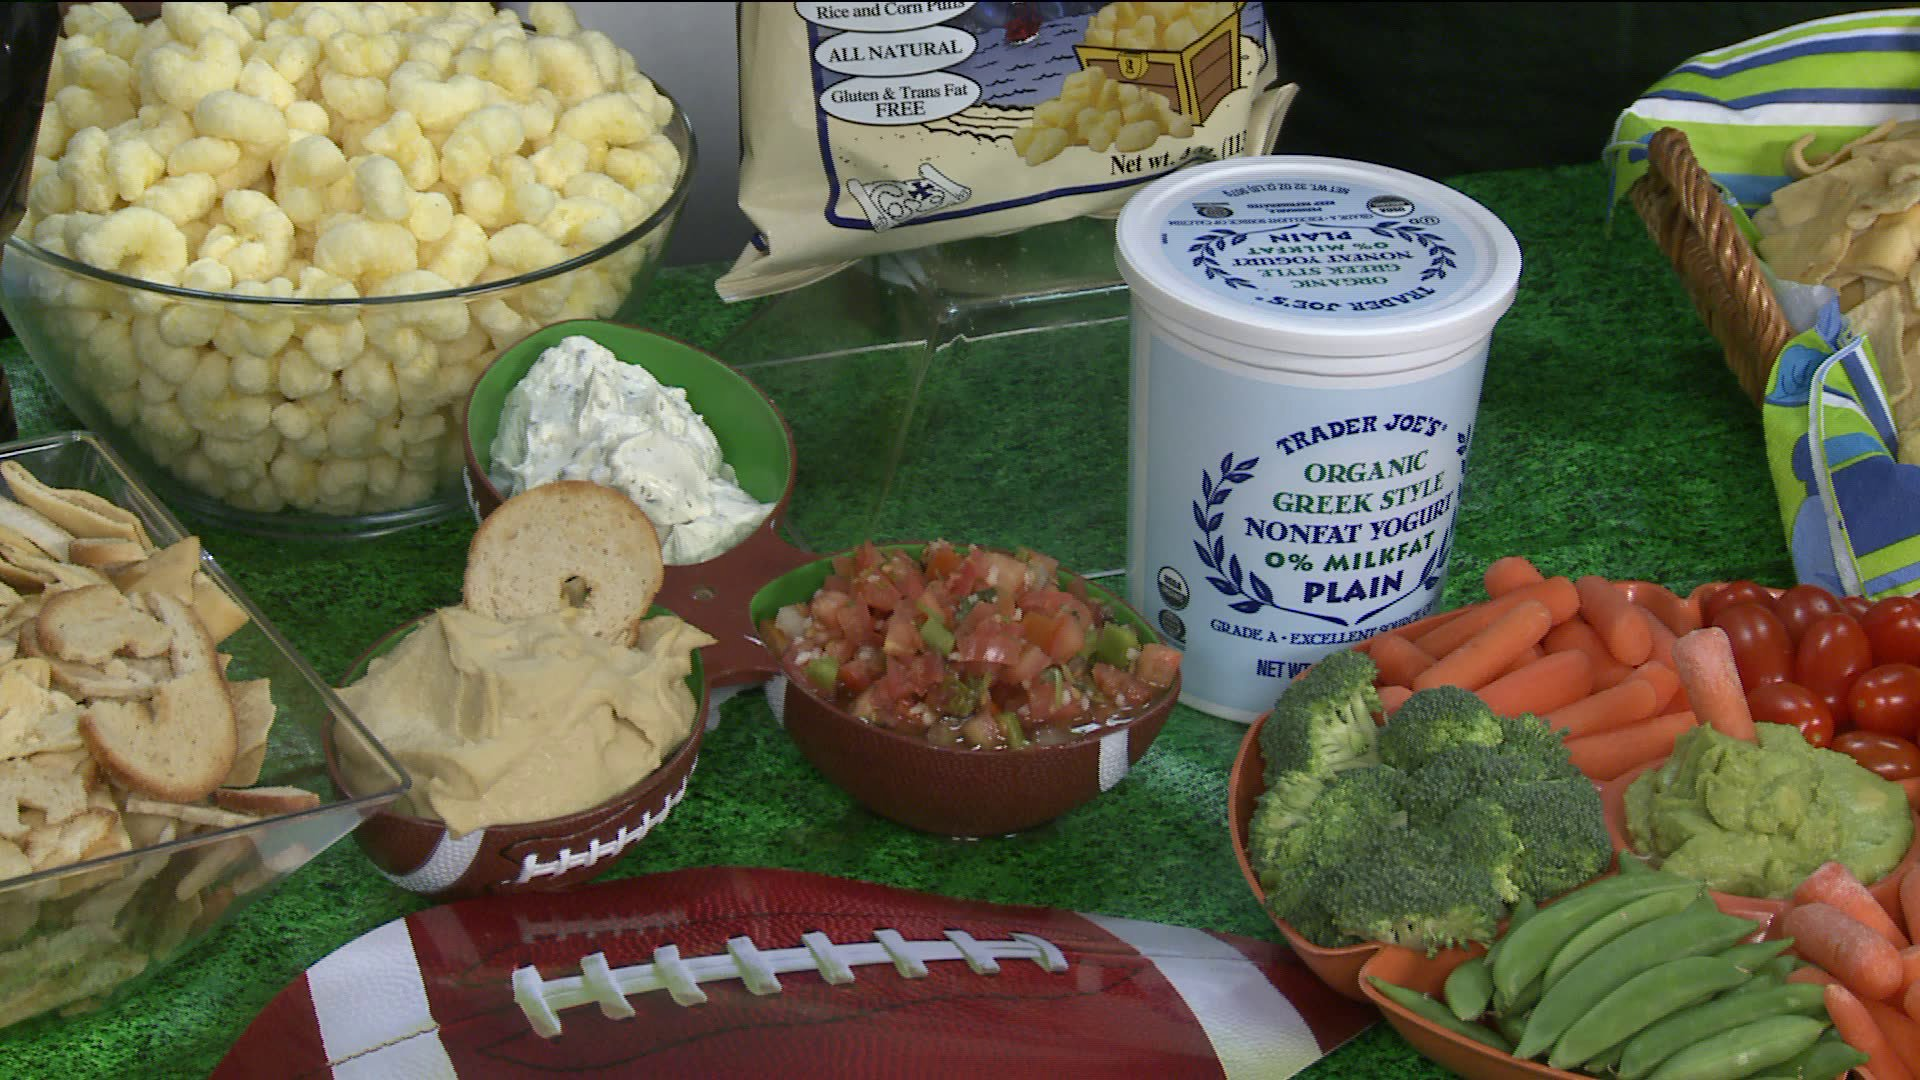 10 Healthier Food Options For Your Super Bowl Party